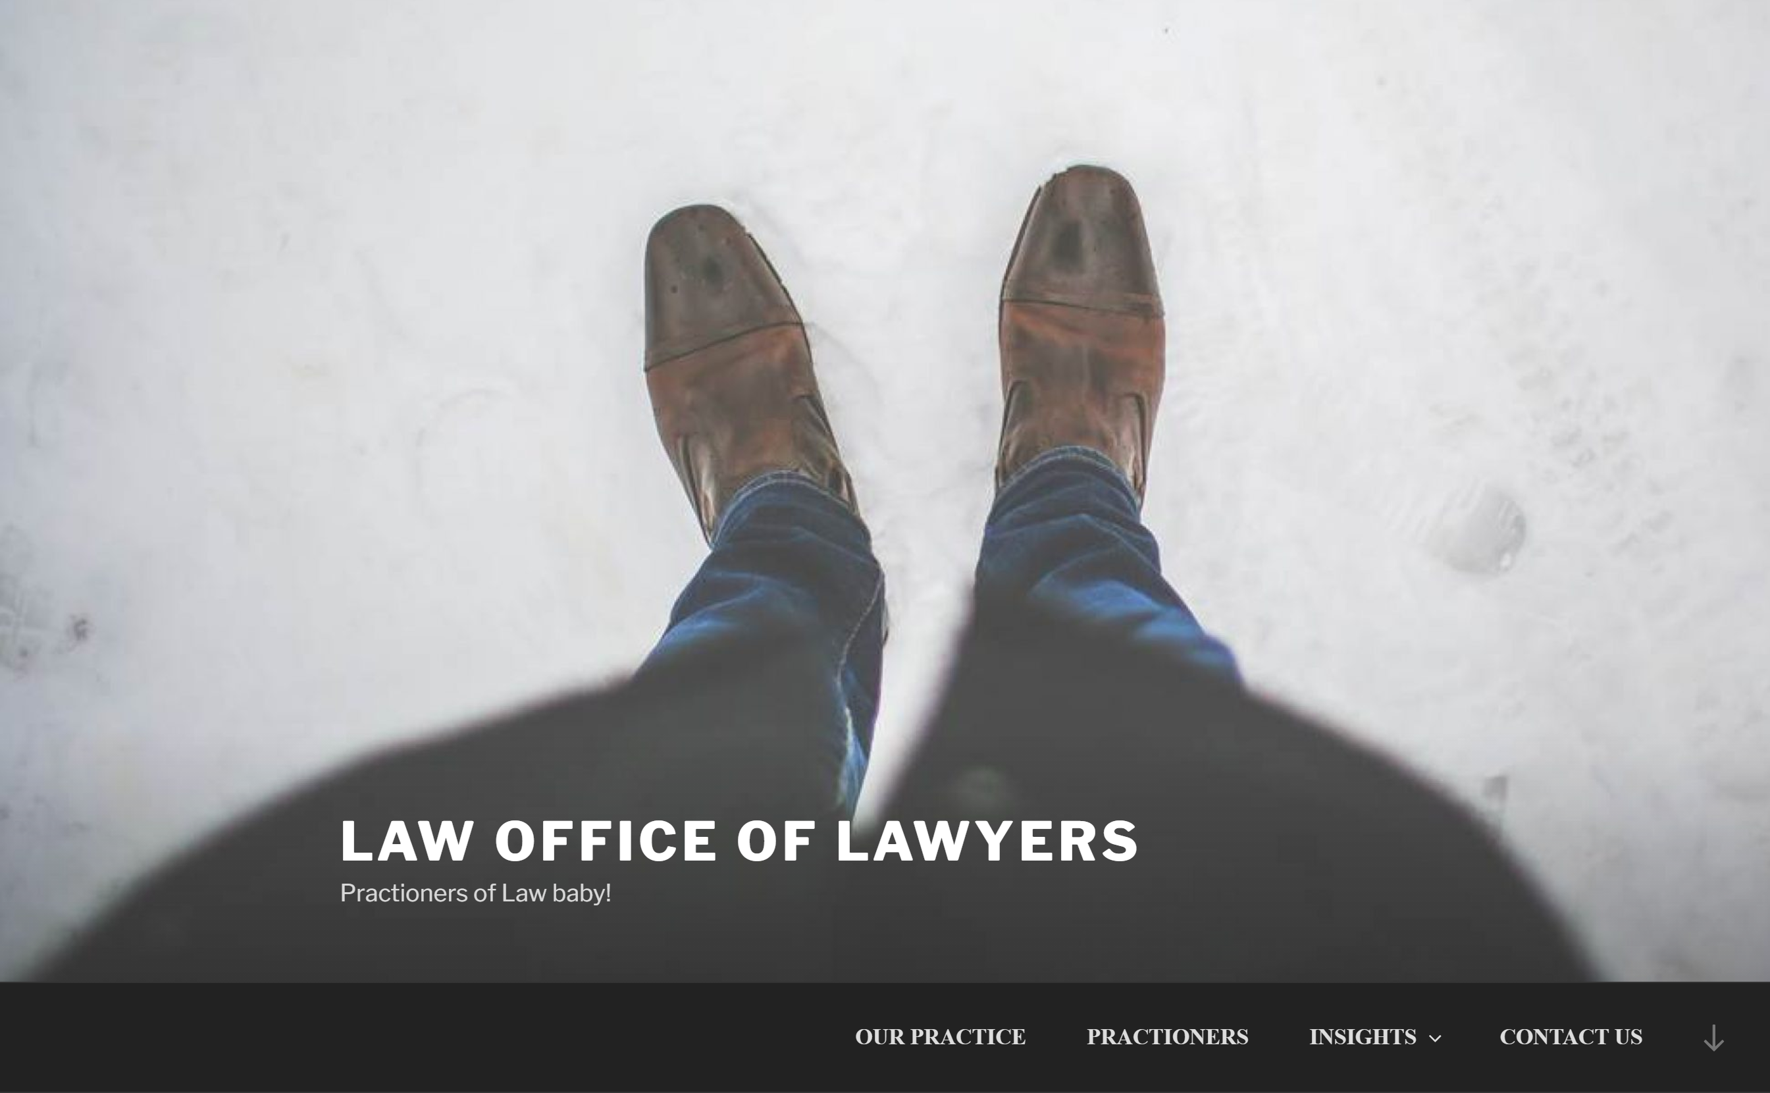 LawOfficeOfLawyers-2017 Word Press Themed SiteP